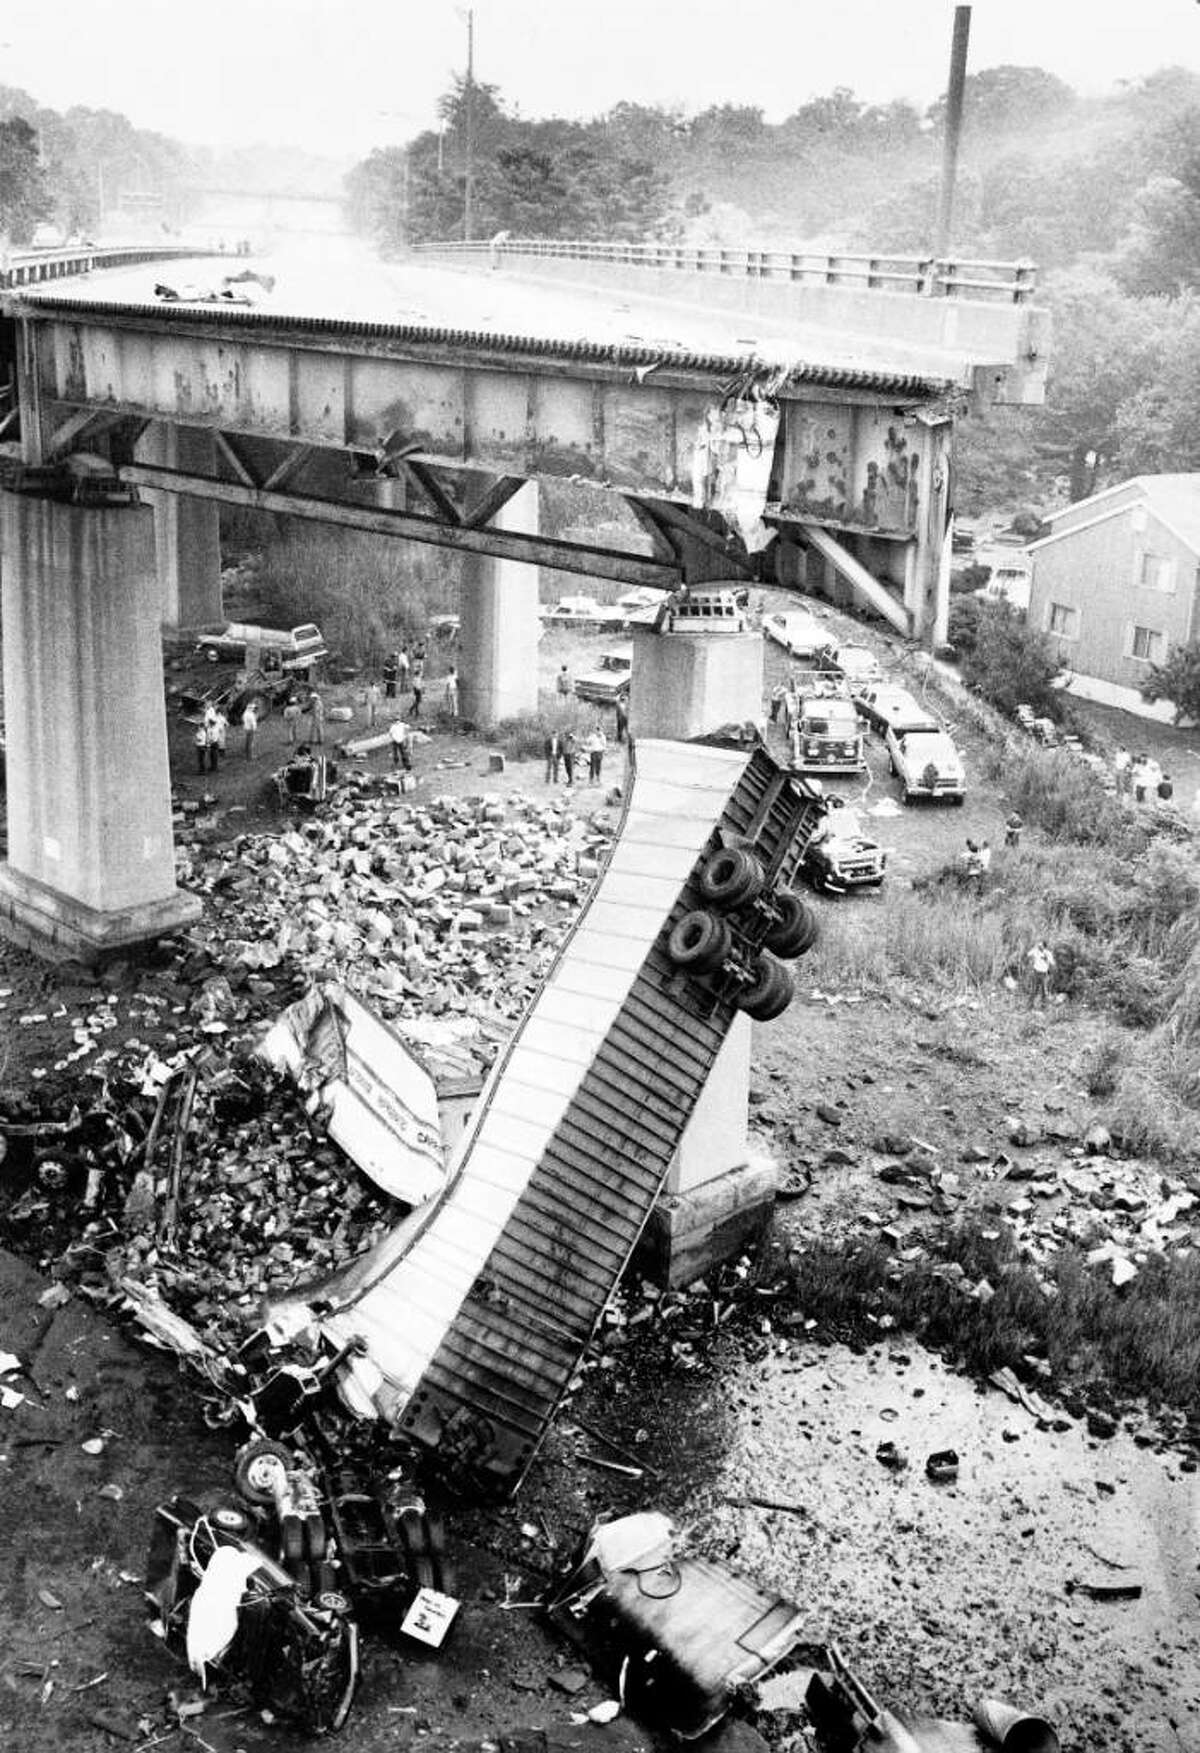 June 29, 1983 Greenwich Time file photo of the wreckage from the collapse of the Mianus Bridge.